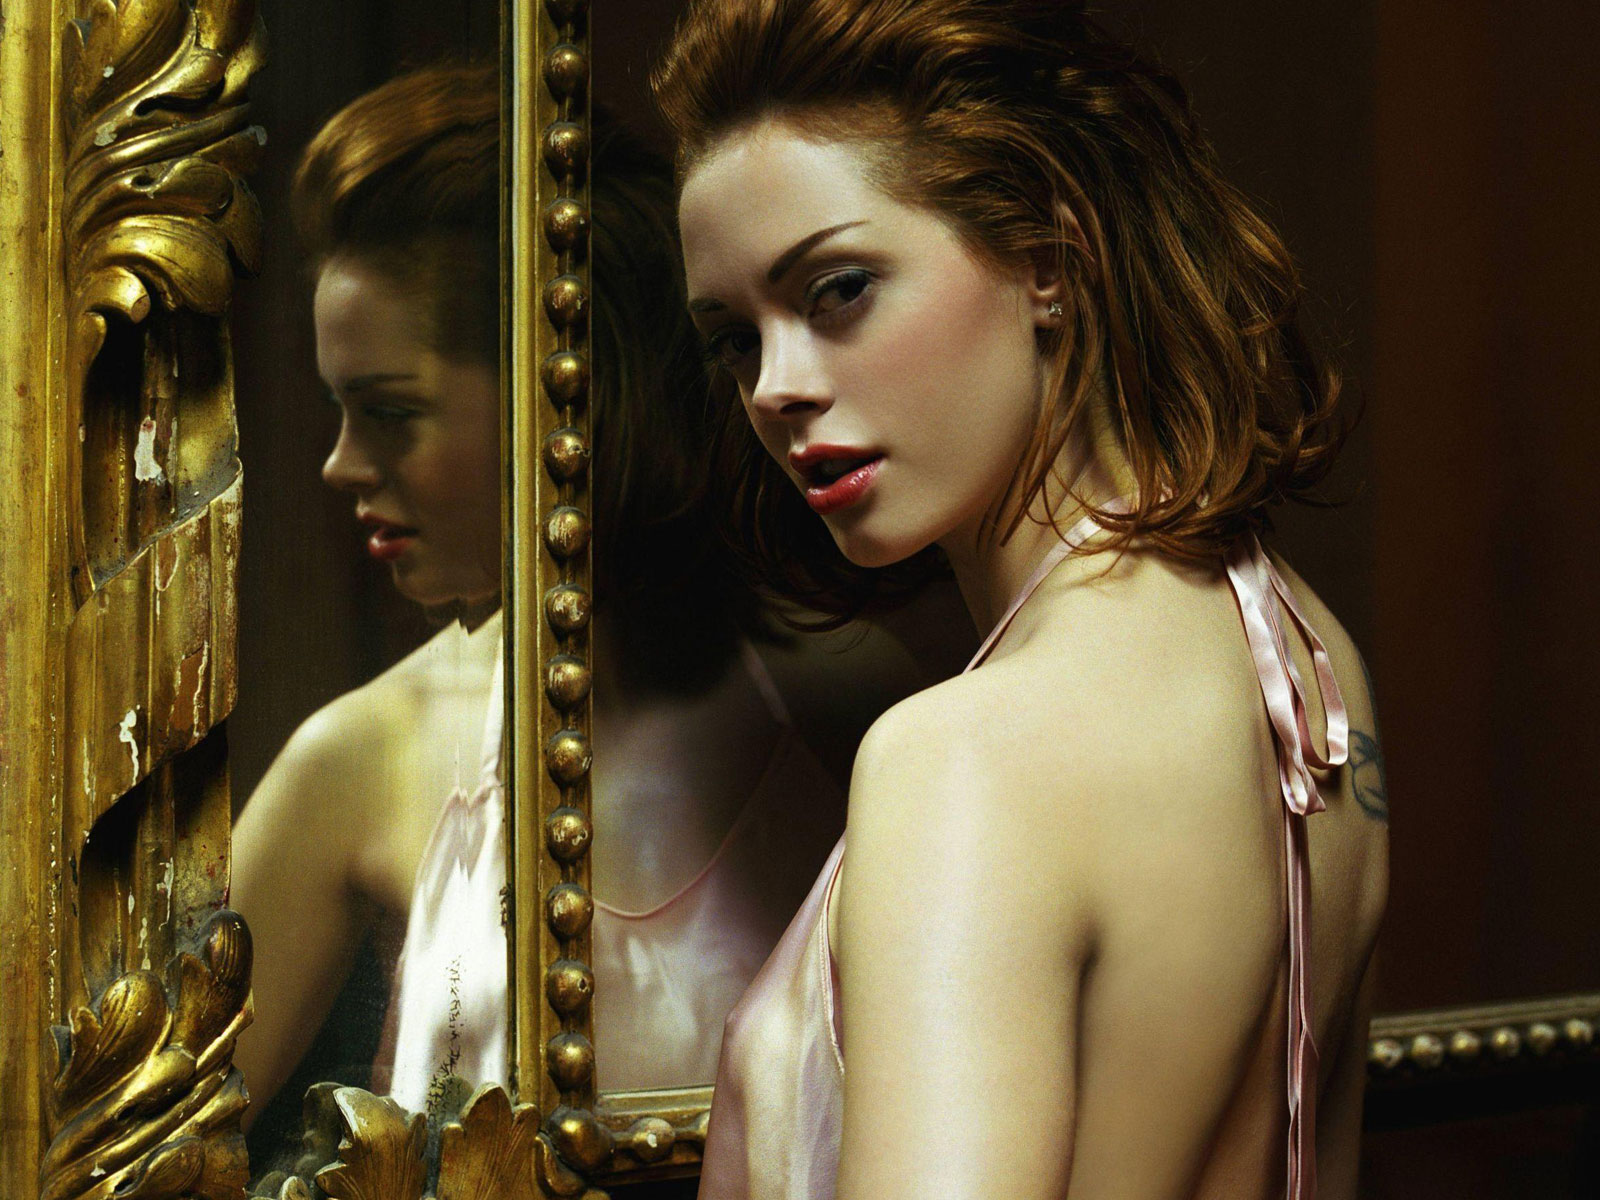 Rose McGowan Planet Terror Actress 1684.8 Kb